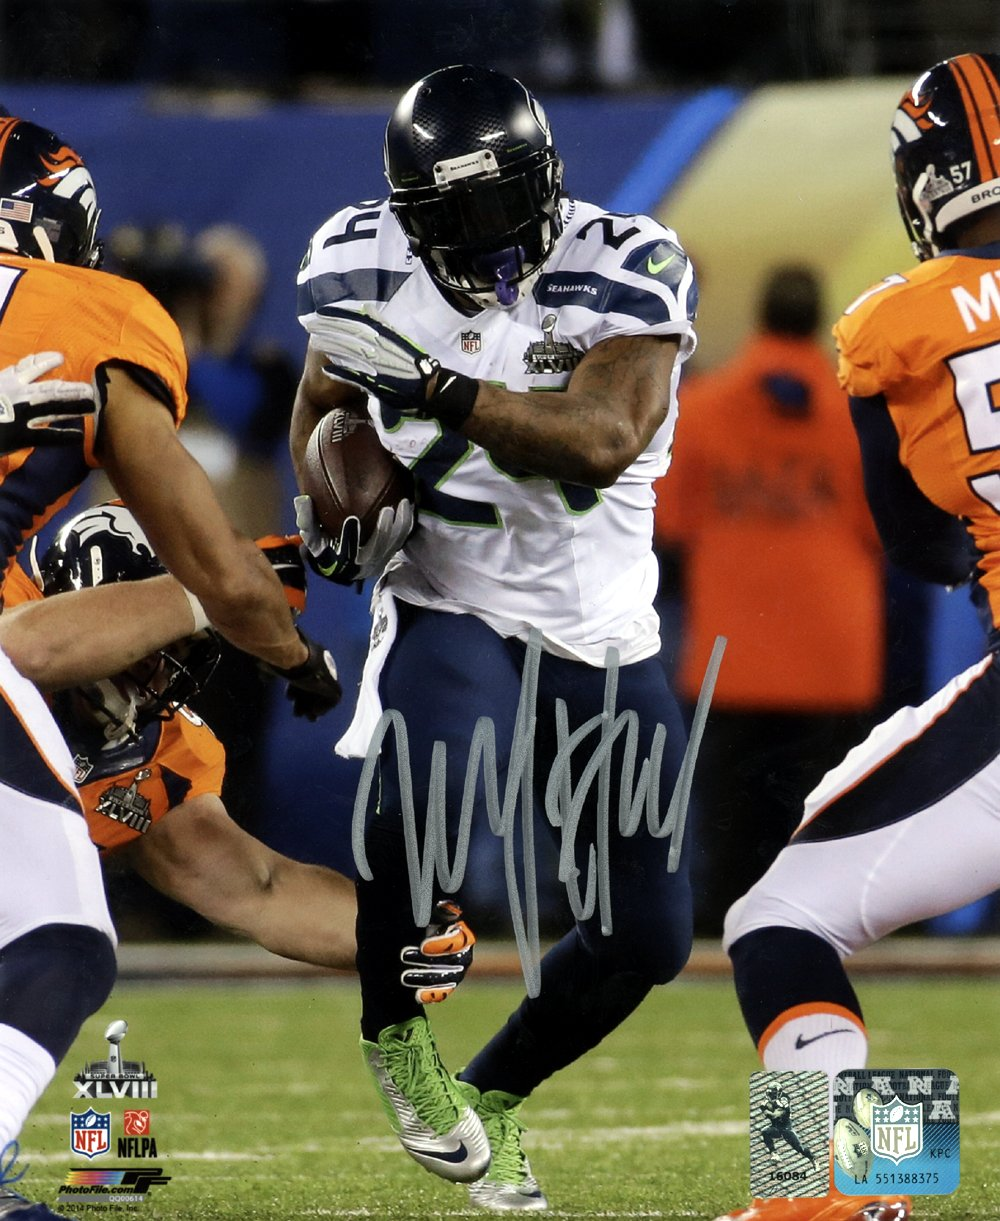 MARSHAWN LYNCH AUTOGRAPHED 8X10 PHOTO SEATTLE SEAHAWKS SUPER BOWL ML HOLO STOCK #130748